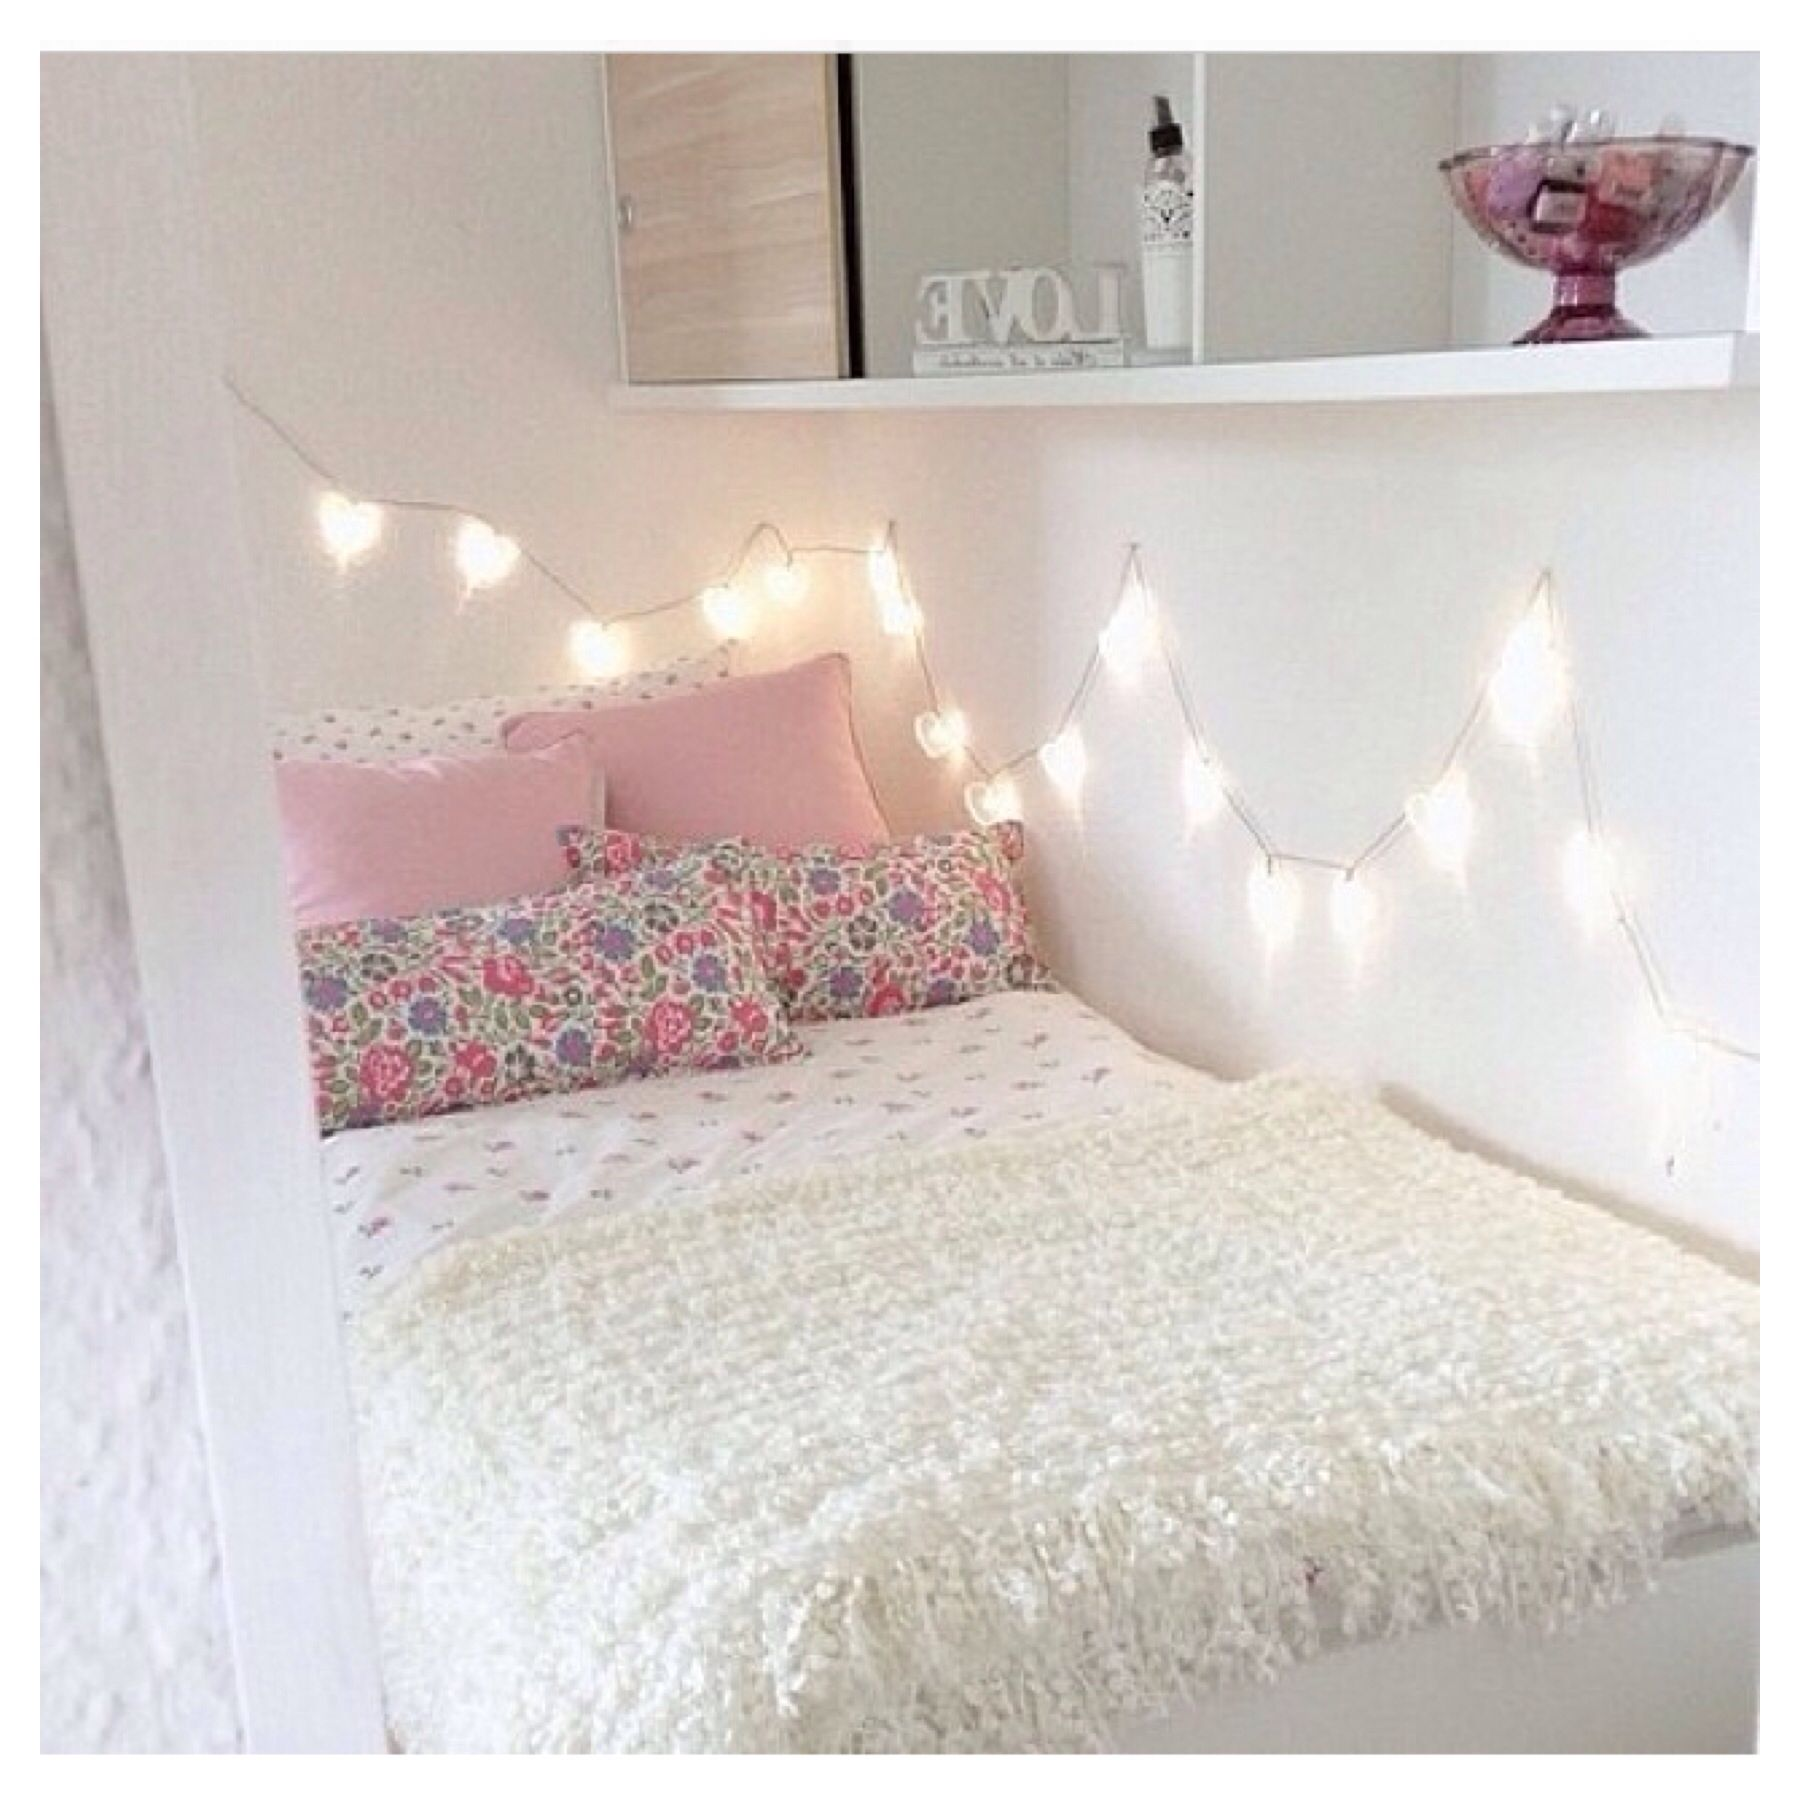 Cute Bedrooms Pinterest Decoration fairy light room decor | ideas for bedroom | pinterest | fairy